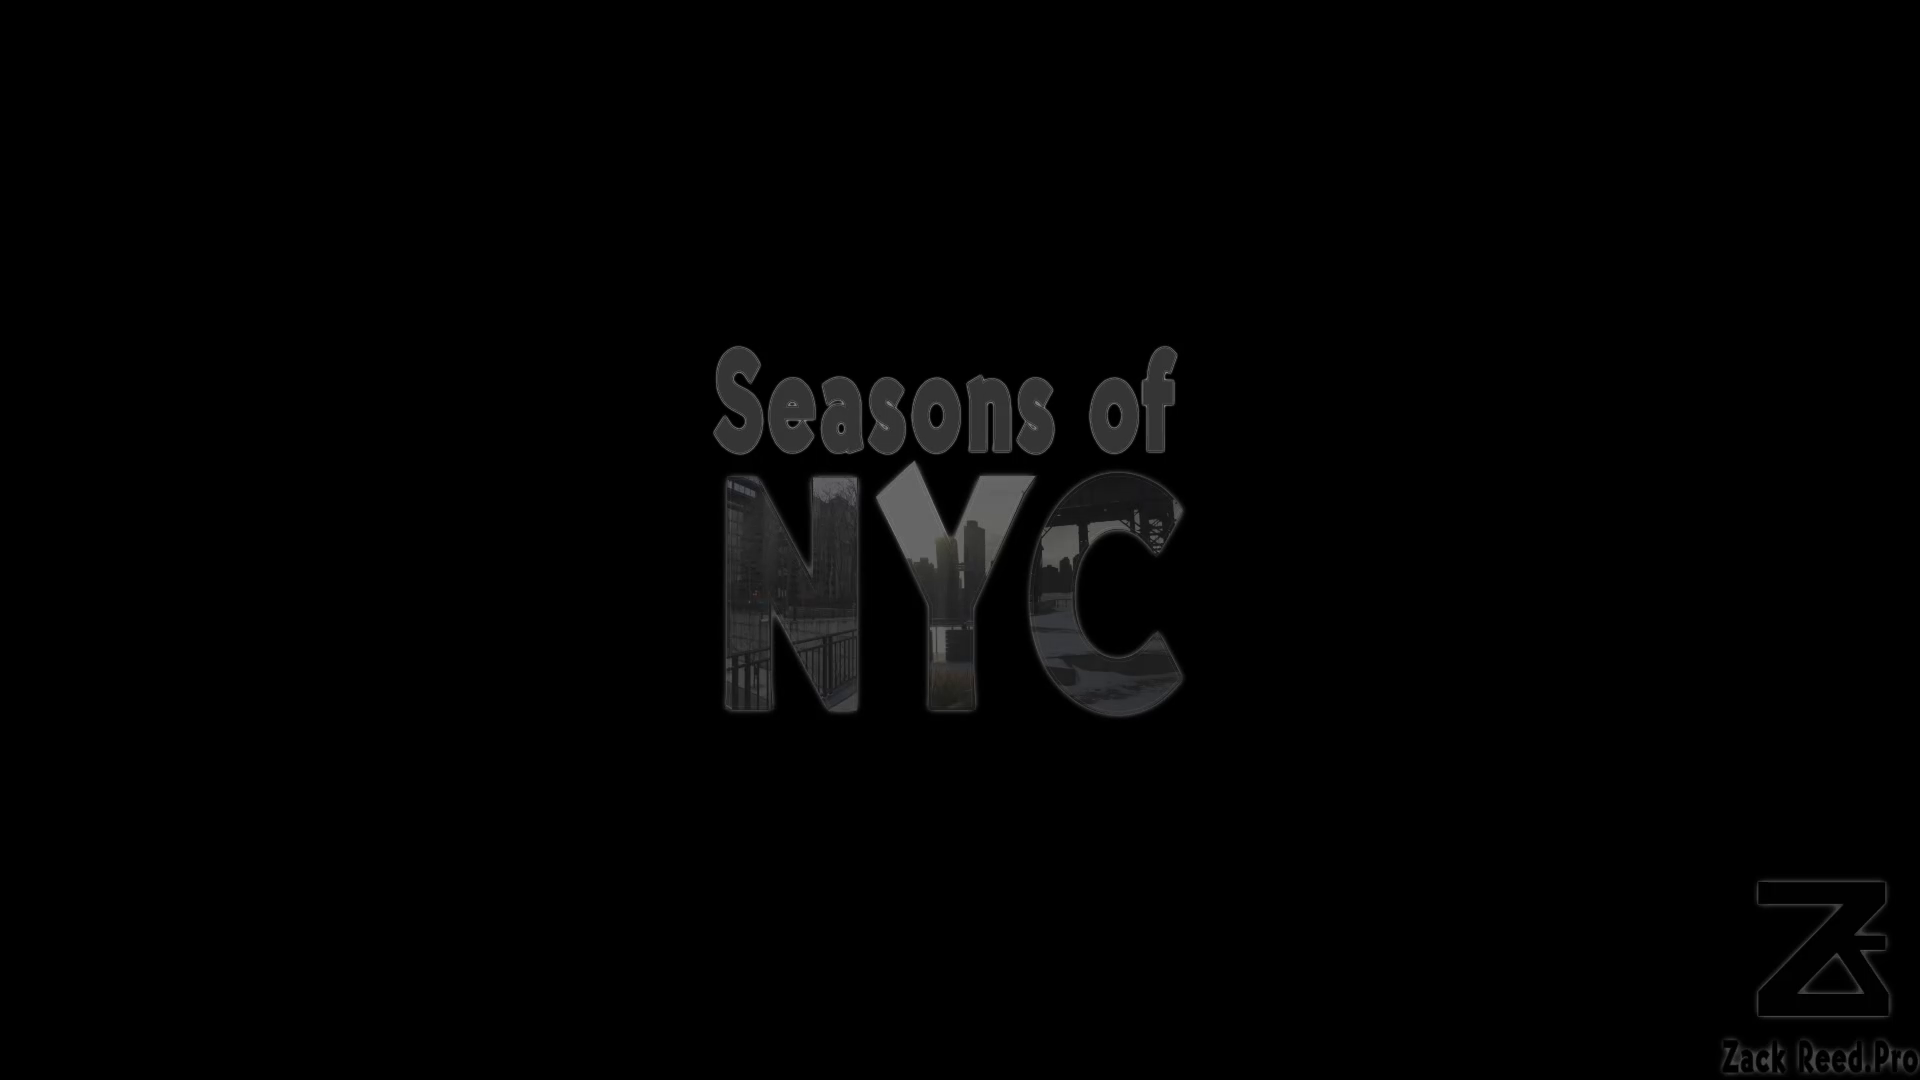 Seasons of NYC